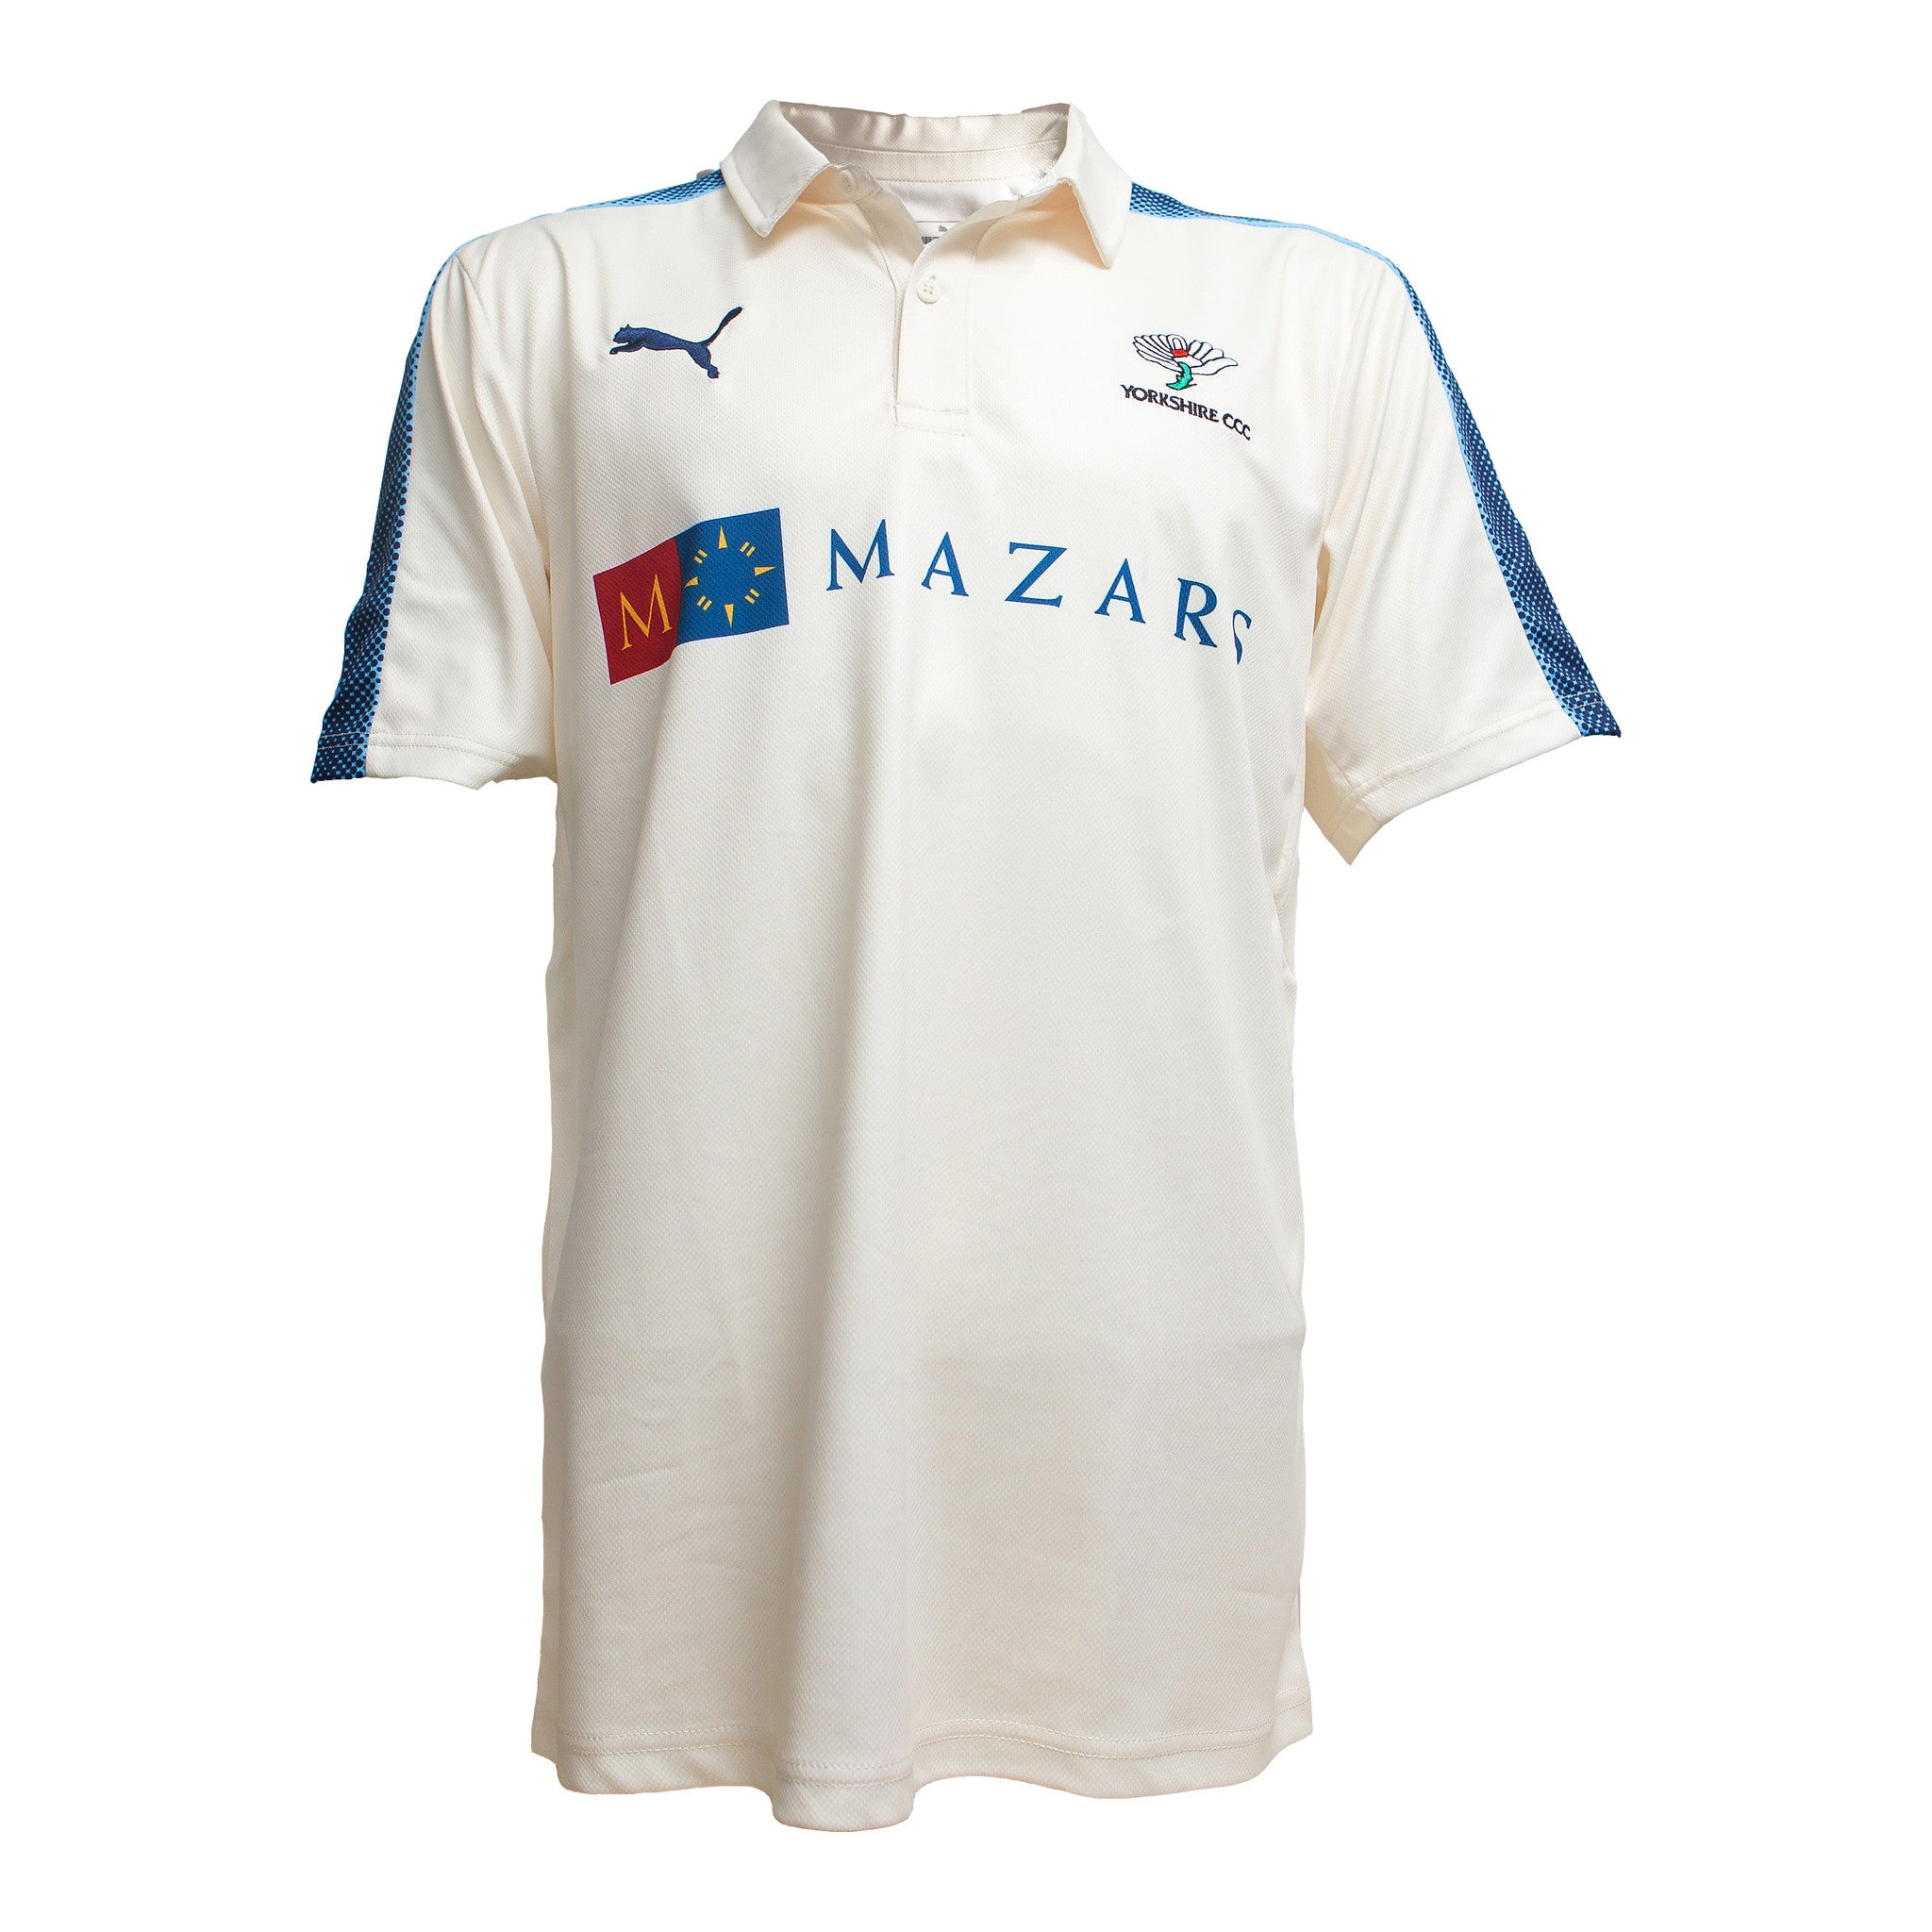 2017 Yorkshire County Championship Shirt starting from 40.00